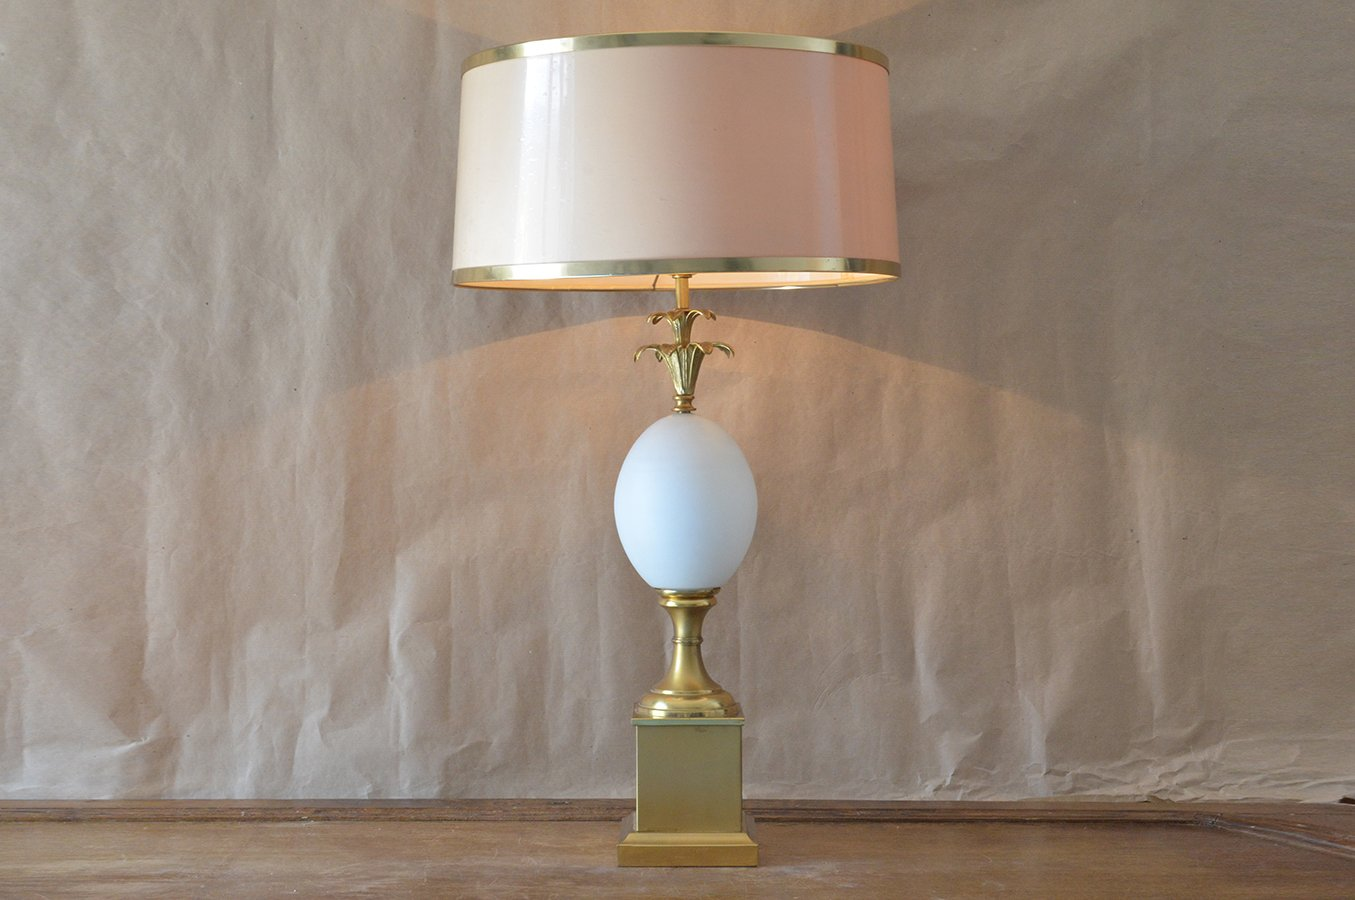 Pineapple table lamp from valenti luce 1960s for sale at pamono pineapple table lamp from valenti luce 1960s aloadofball Images